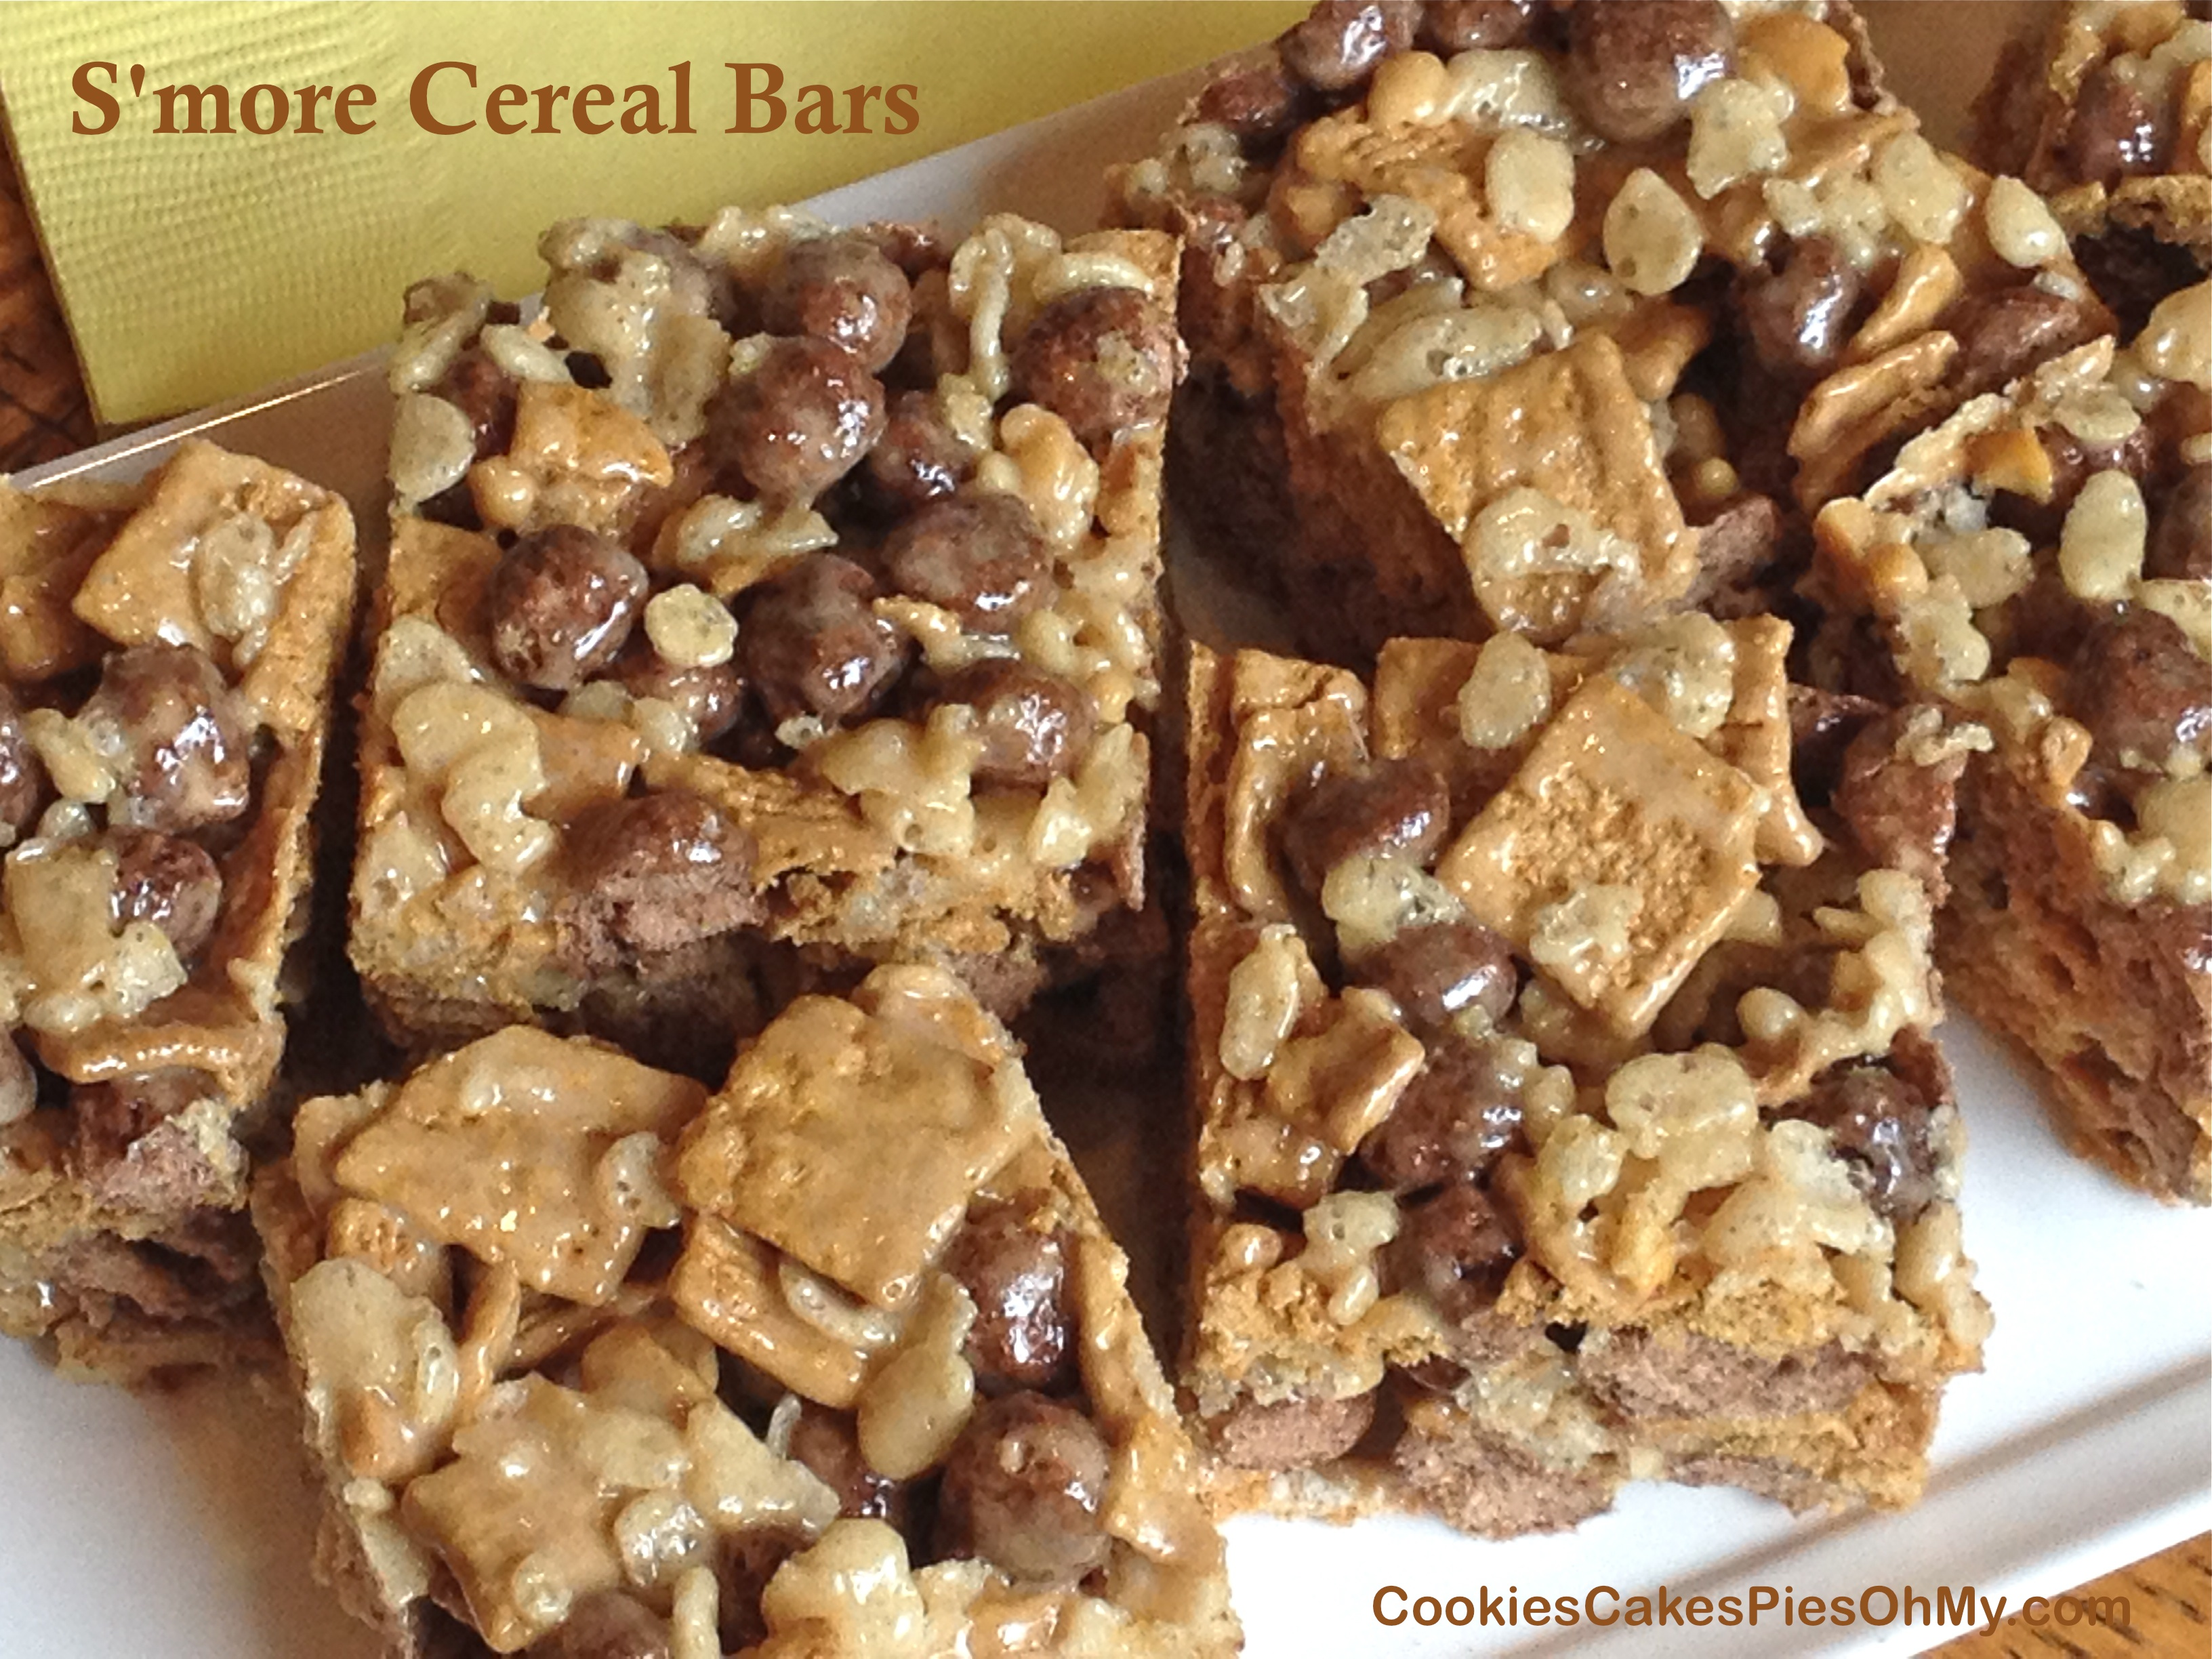 Smore cereal bars cookiescakespiesohmy smore cereal bars ccuart Choice Image